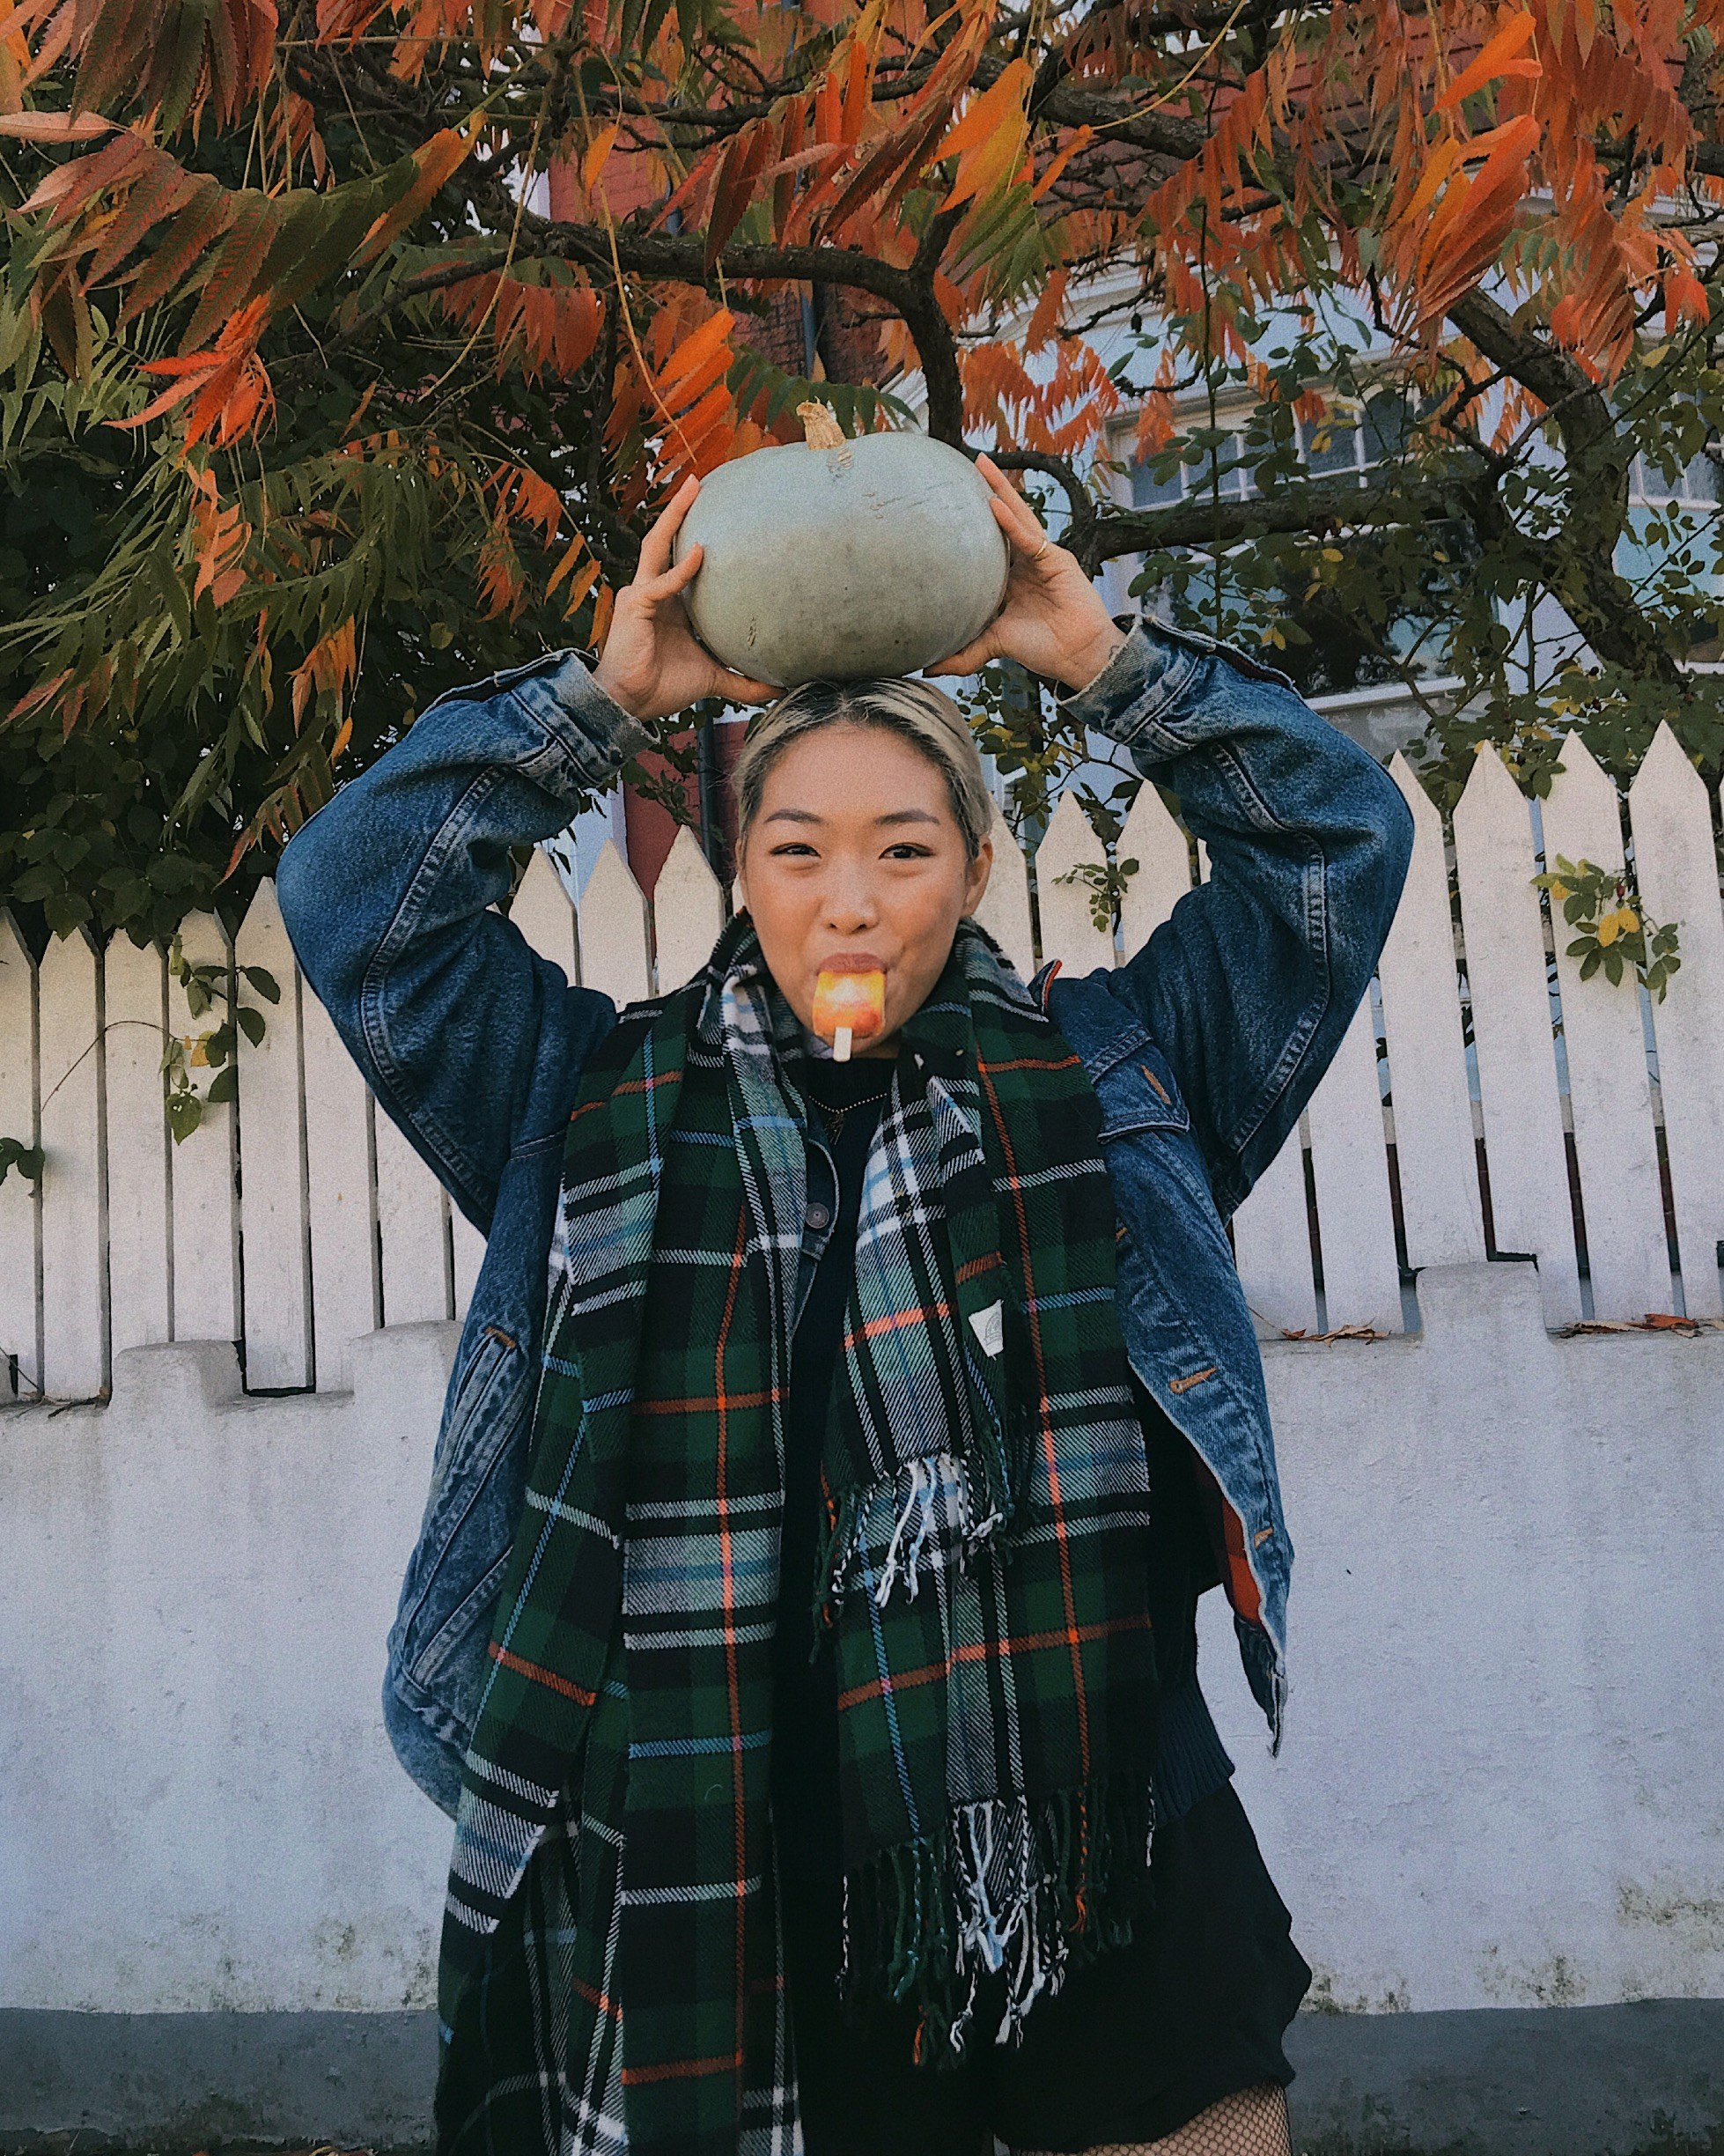 1. We love shopping for pumpkins of all shapes and sizes. We recommend going to a pumpkin patch with your friends and family to pick up a few of these beauties! We found this amazing grey pumpkin at Brian's farm in Devon!